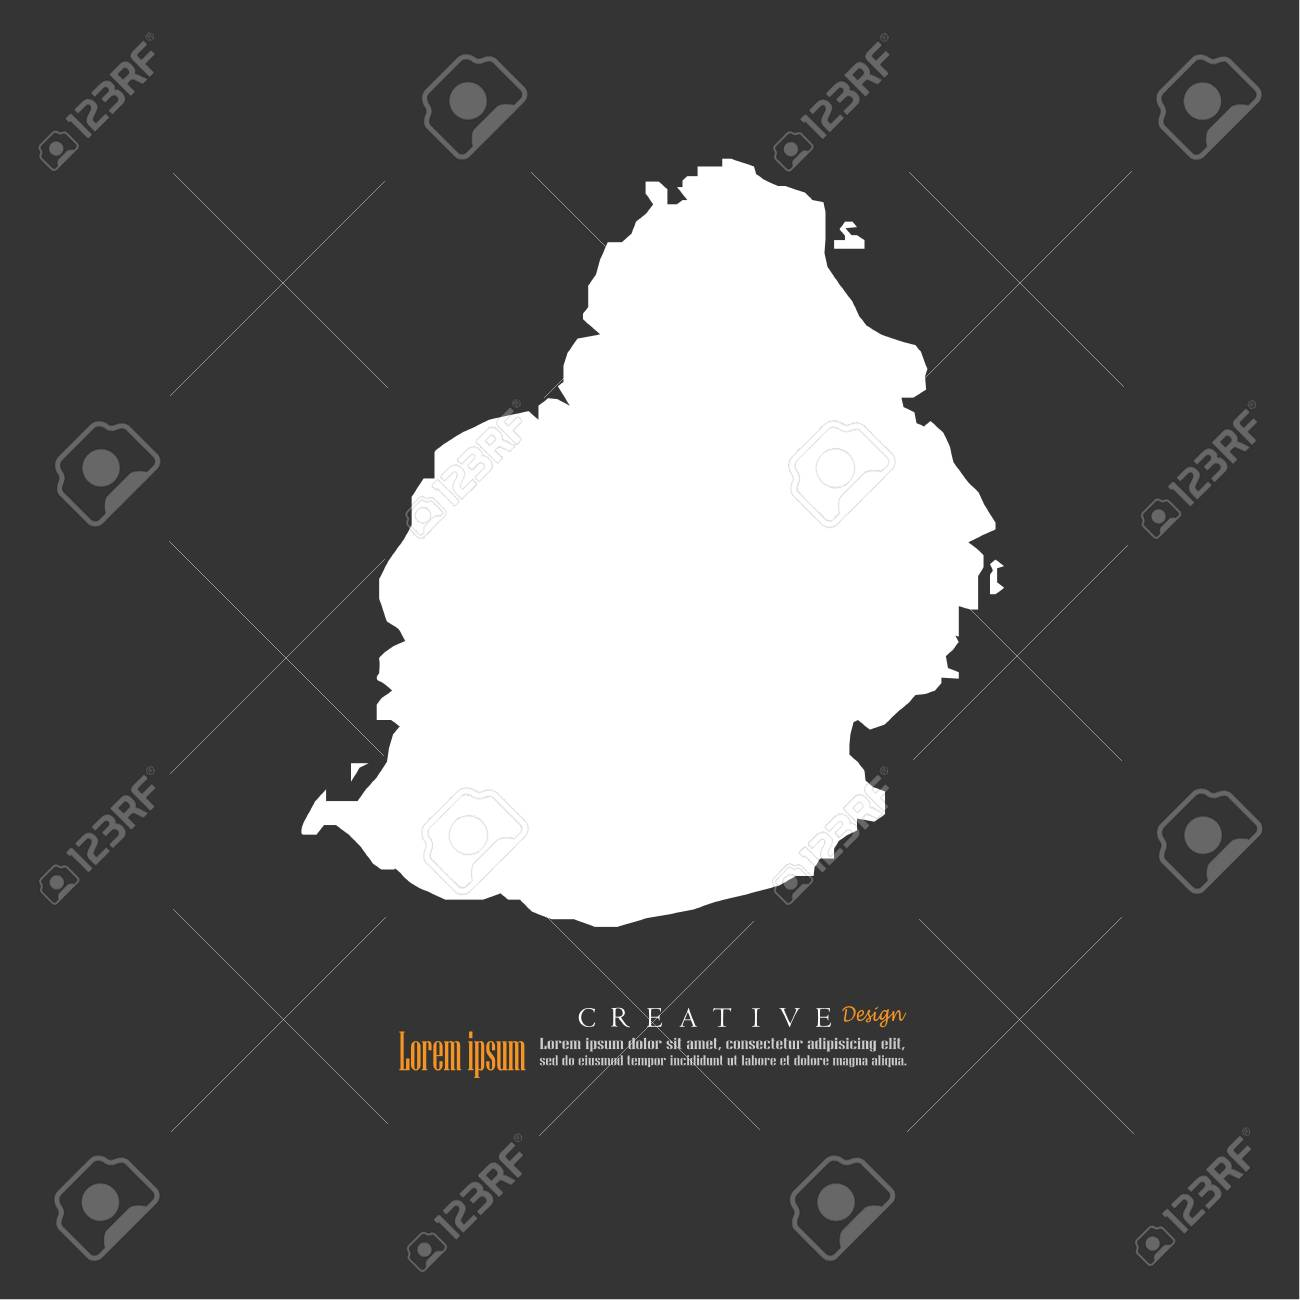 Outline map of Mauritius. vector illustration.